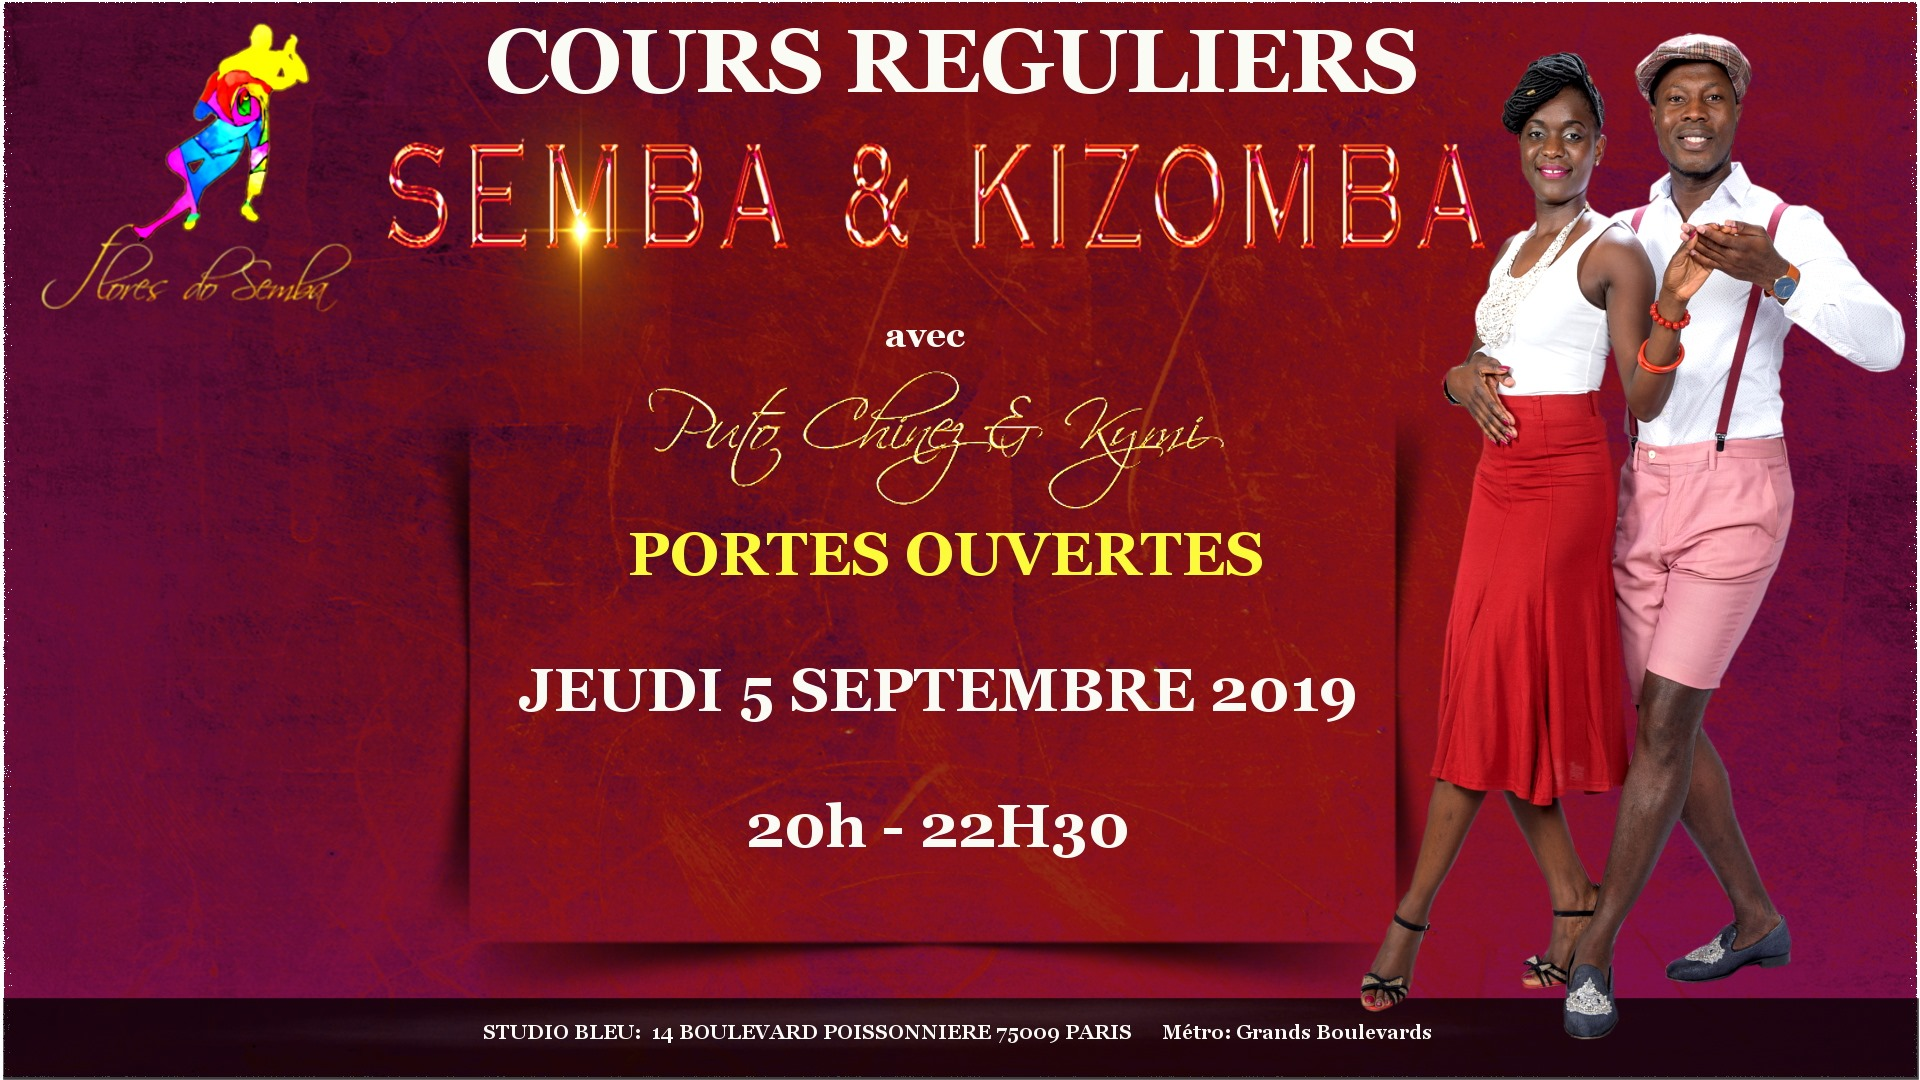 Cours-semba-Kizomba-studio-bleu-Poissonniere-paris-12032020.jpg